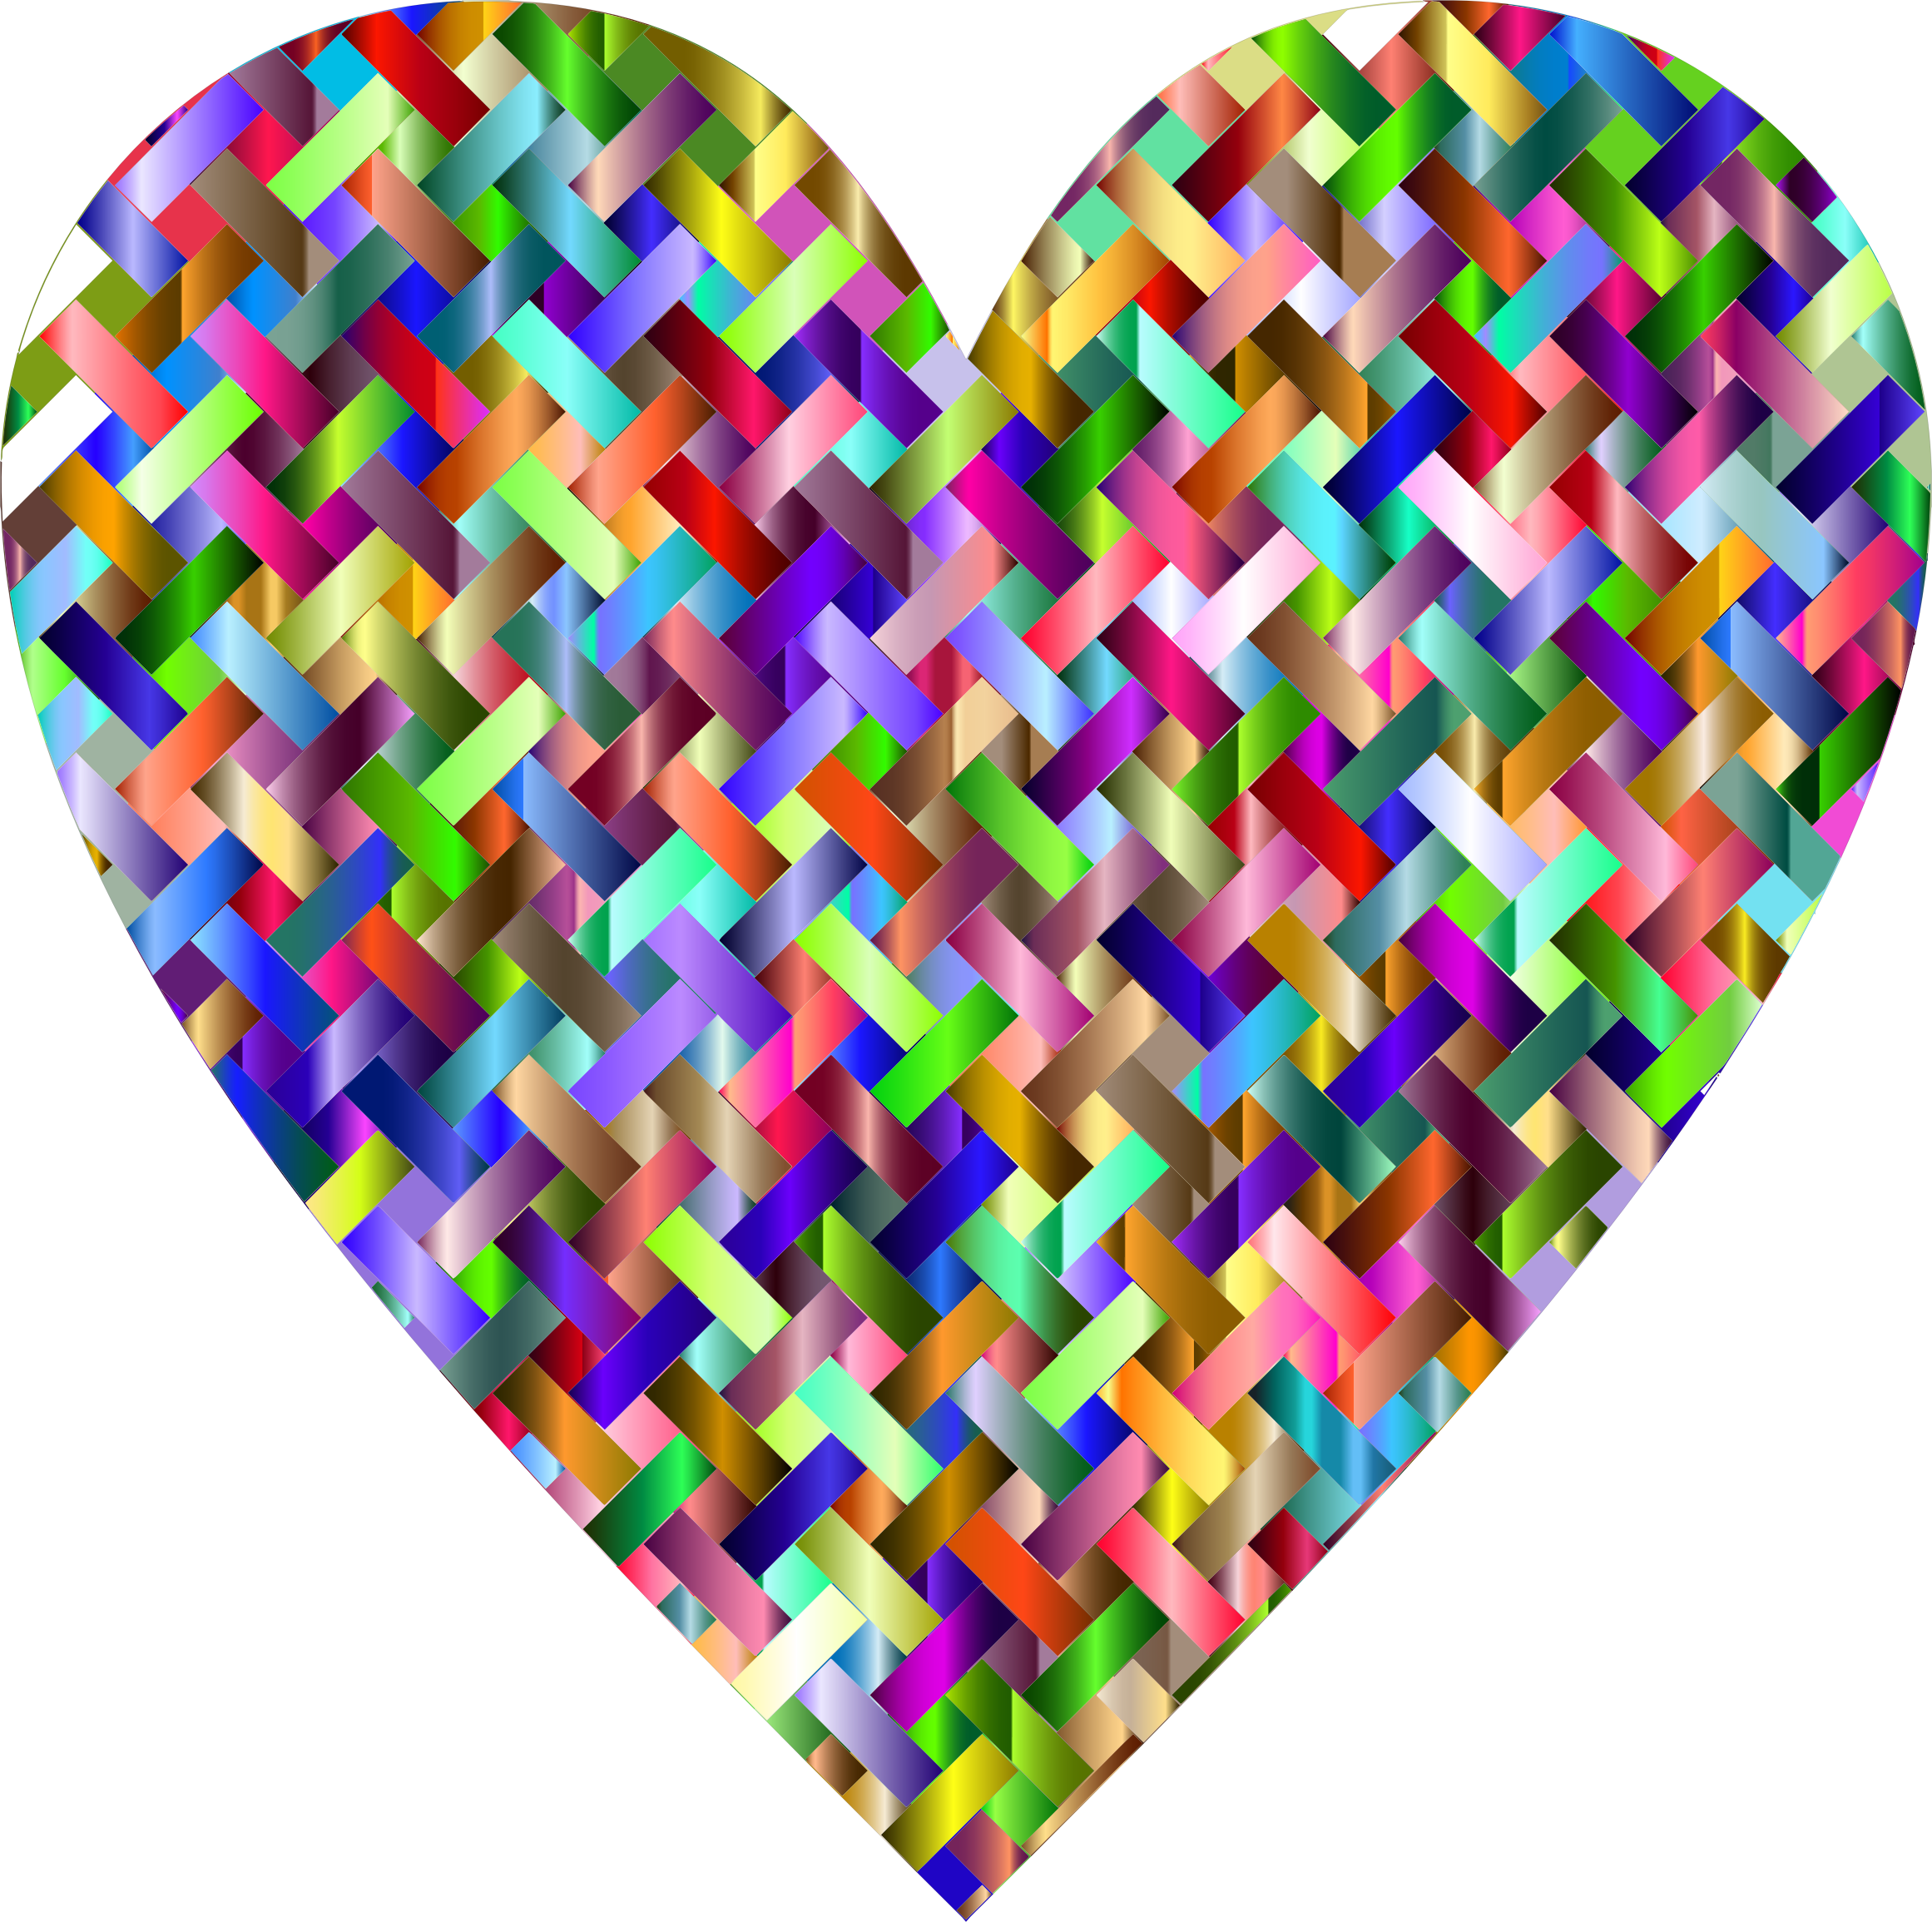 Colorful Heart Lattice Weave 2 by GDJ